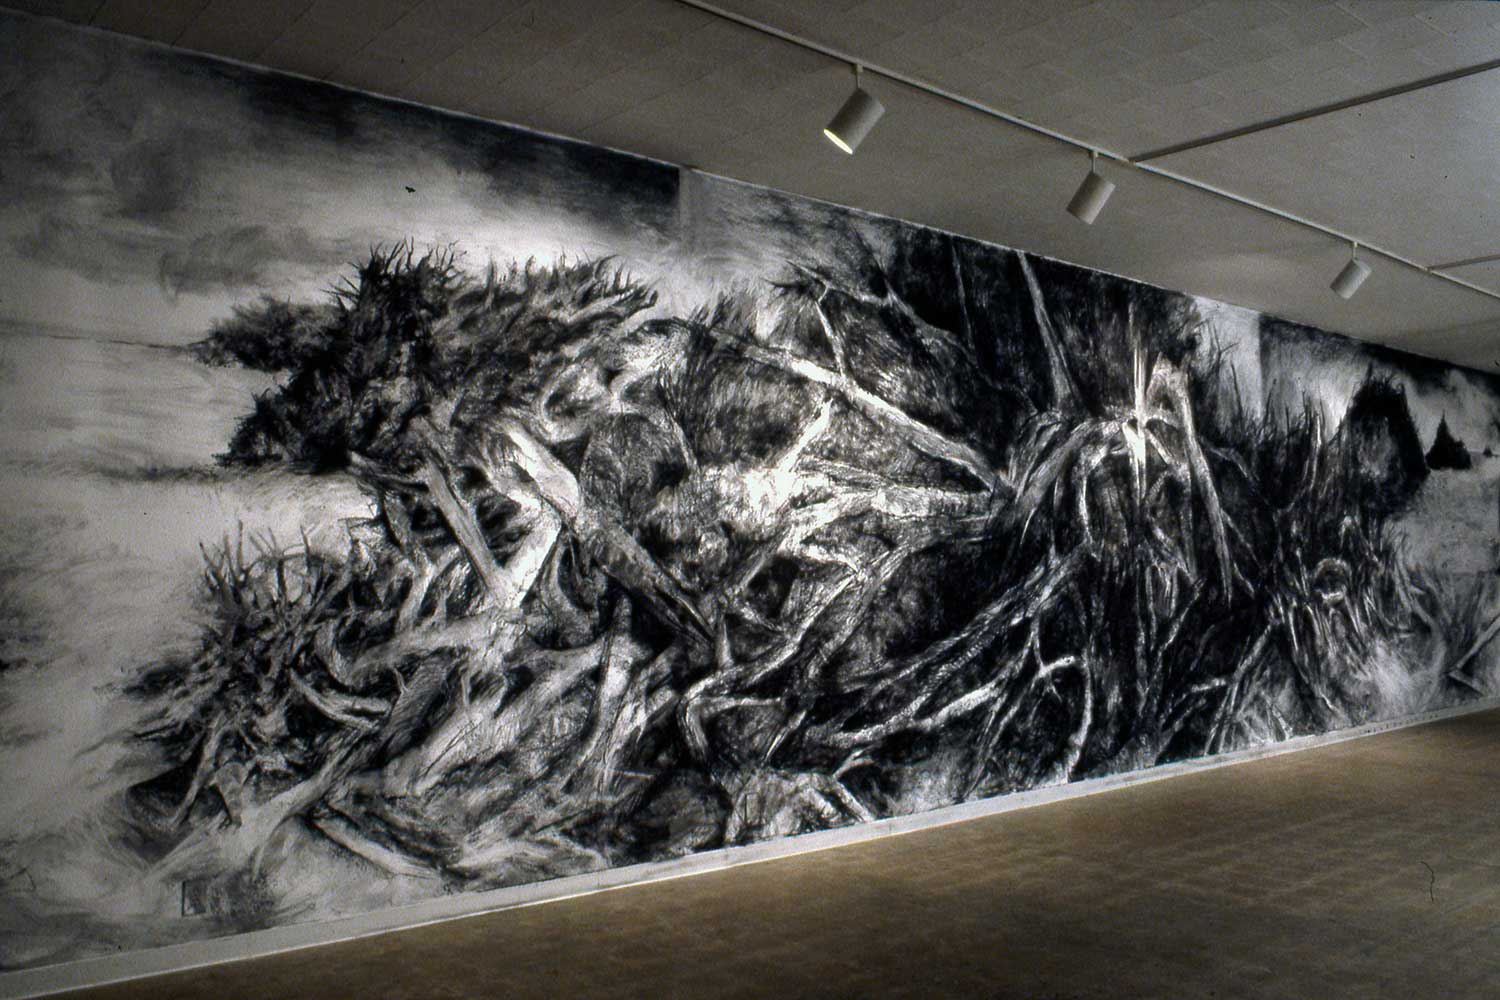 Charcoal on gallery wall 12' x 52', Gallery 25, Fresno CA, 2004